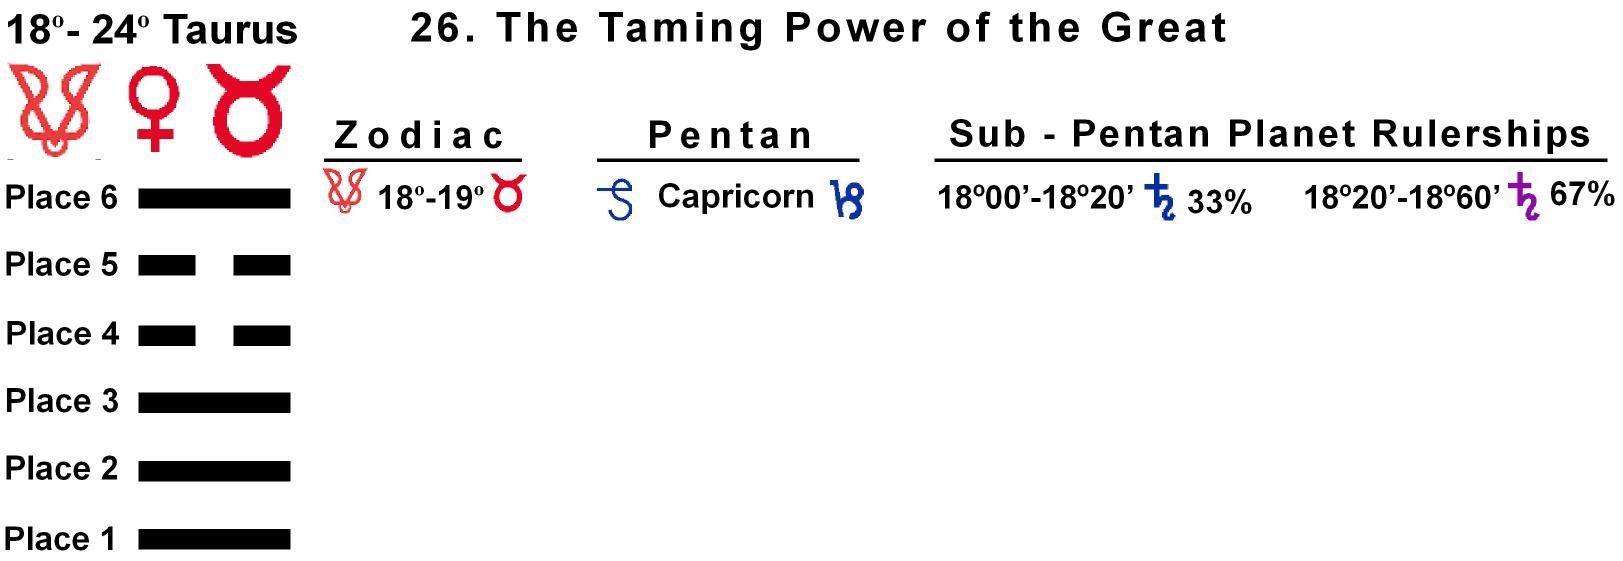 Pent-lines-02TA 18-19 Hx-26 Taming Power Of The Great